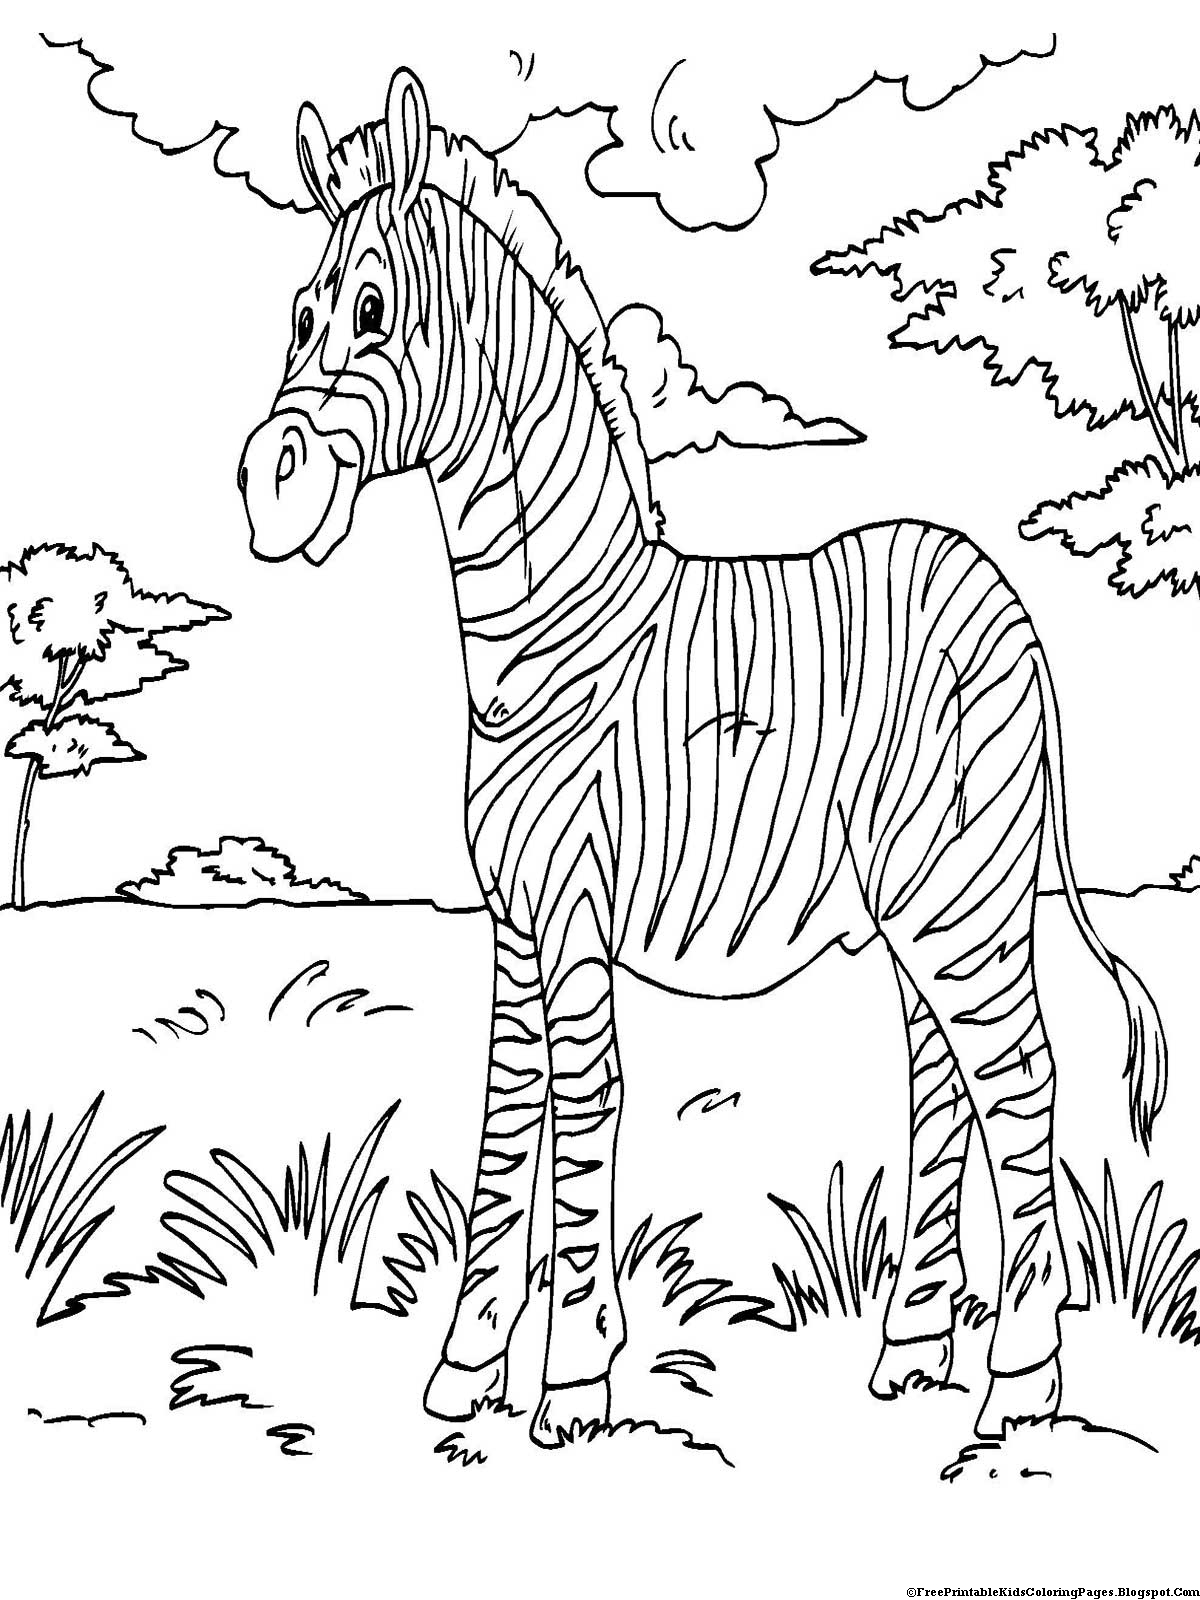 free zebra coloring pages to print free printable zebra coloring pages for kids coloring to free print pages zebra